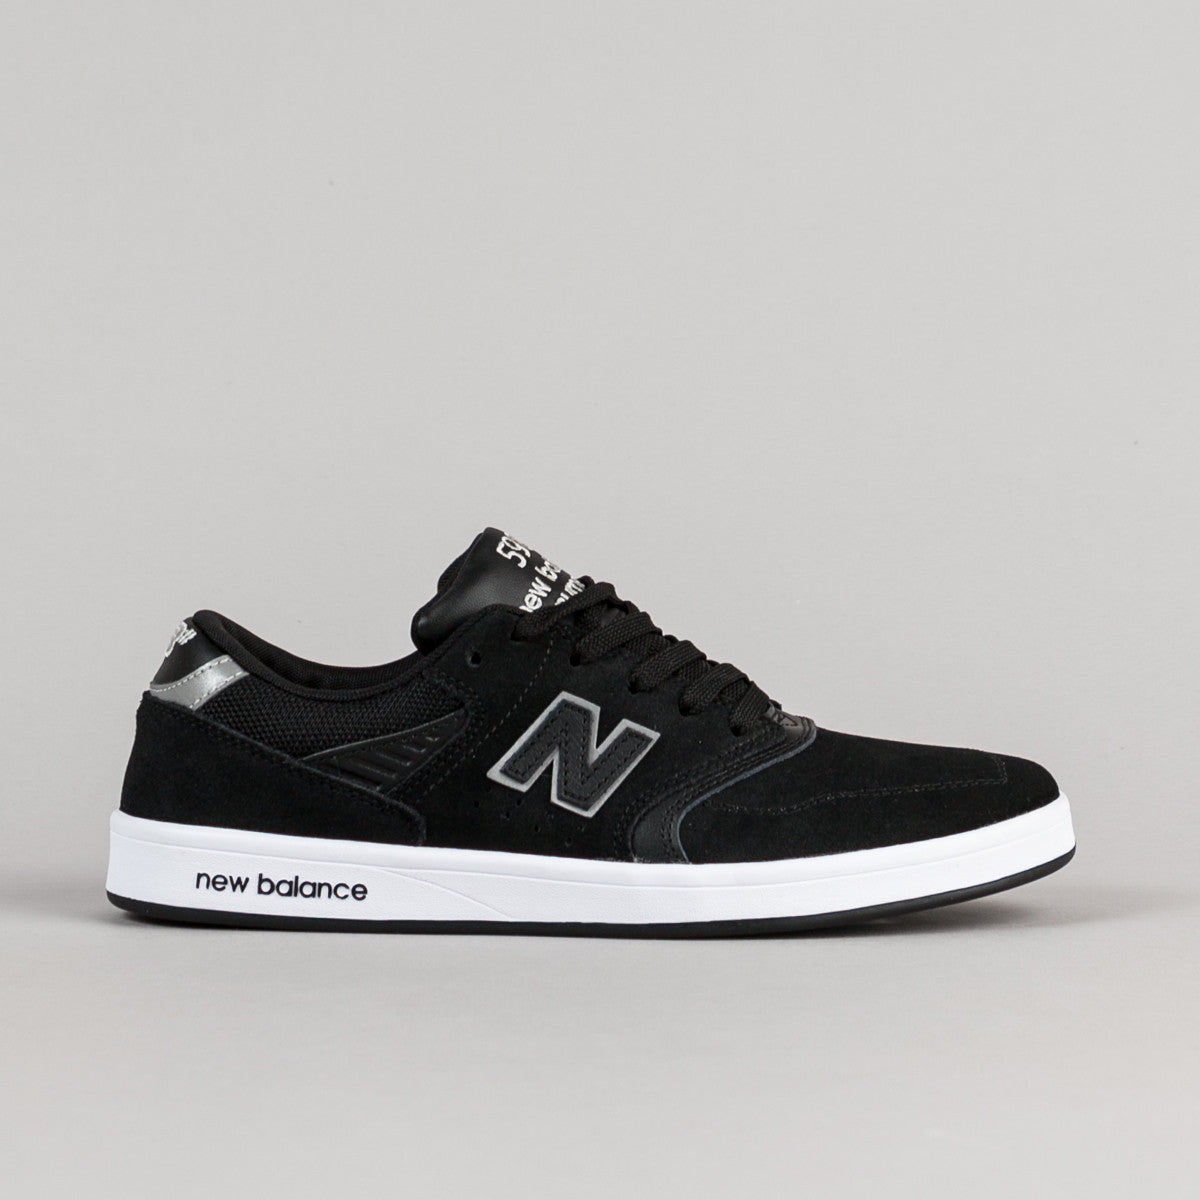 New Balance Numeric 598 Shoes - Black